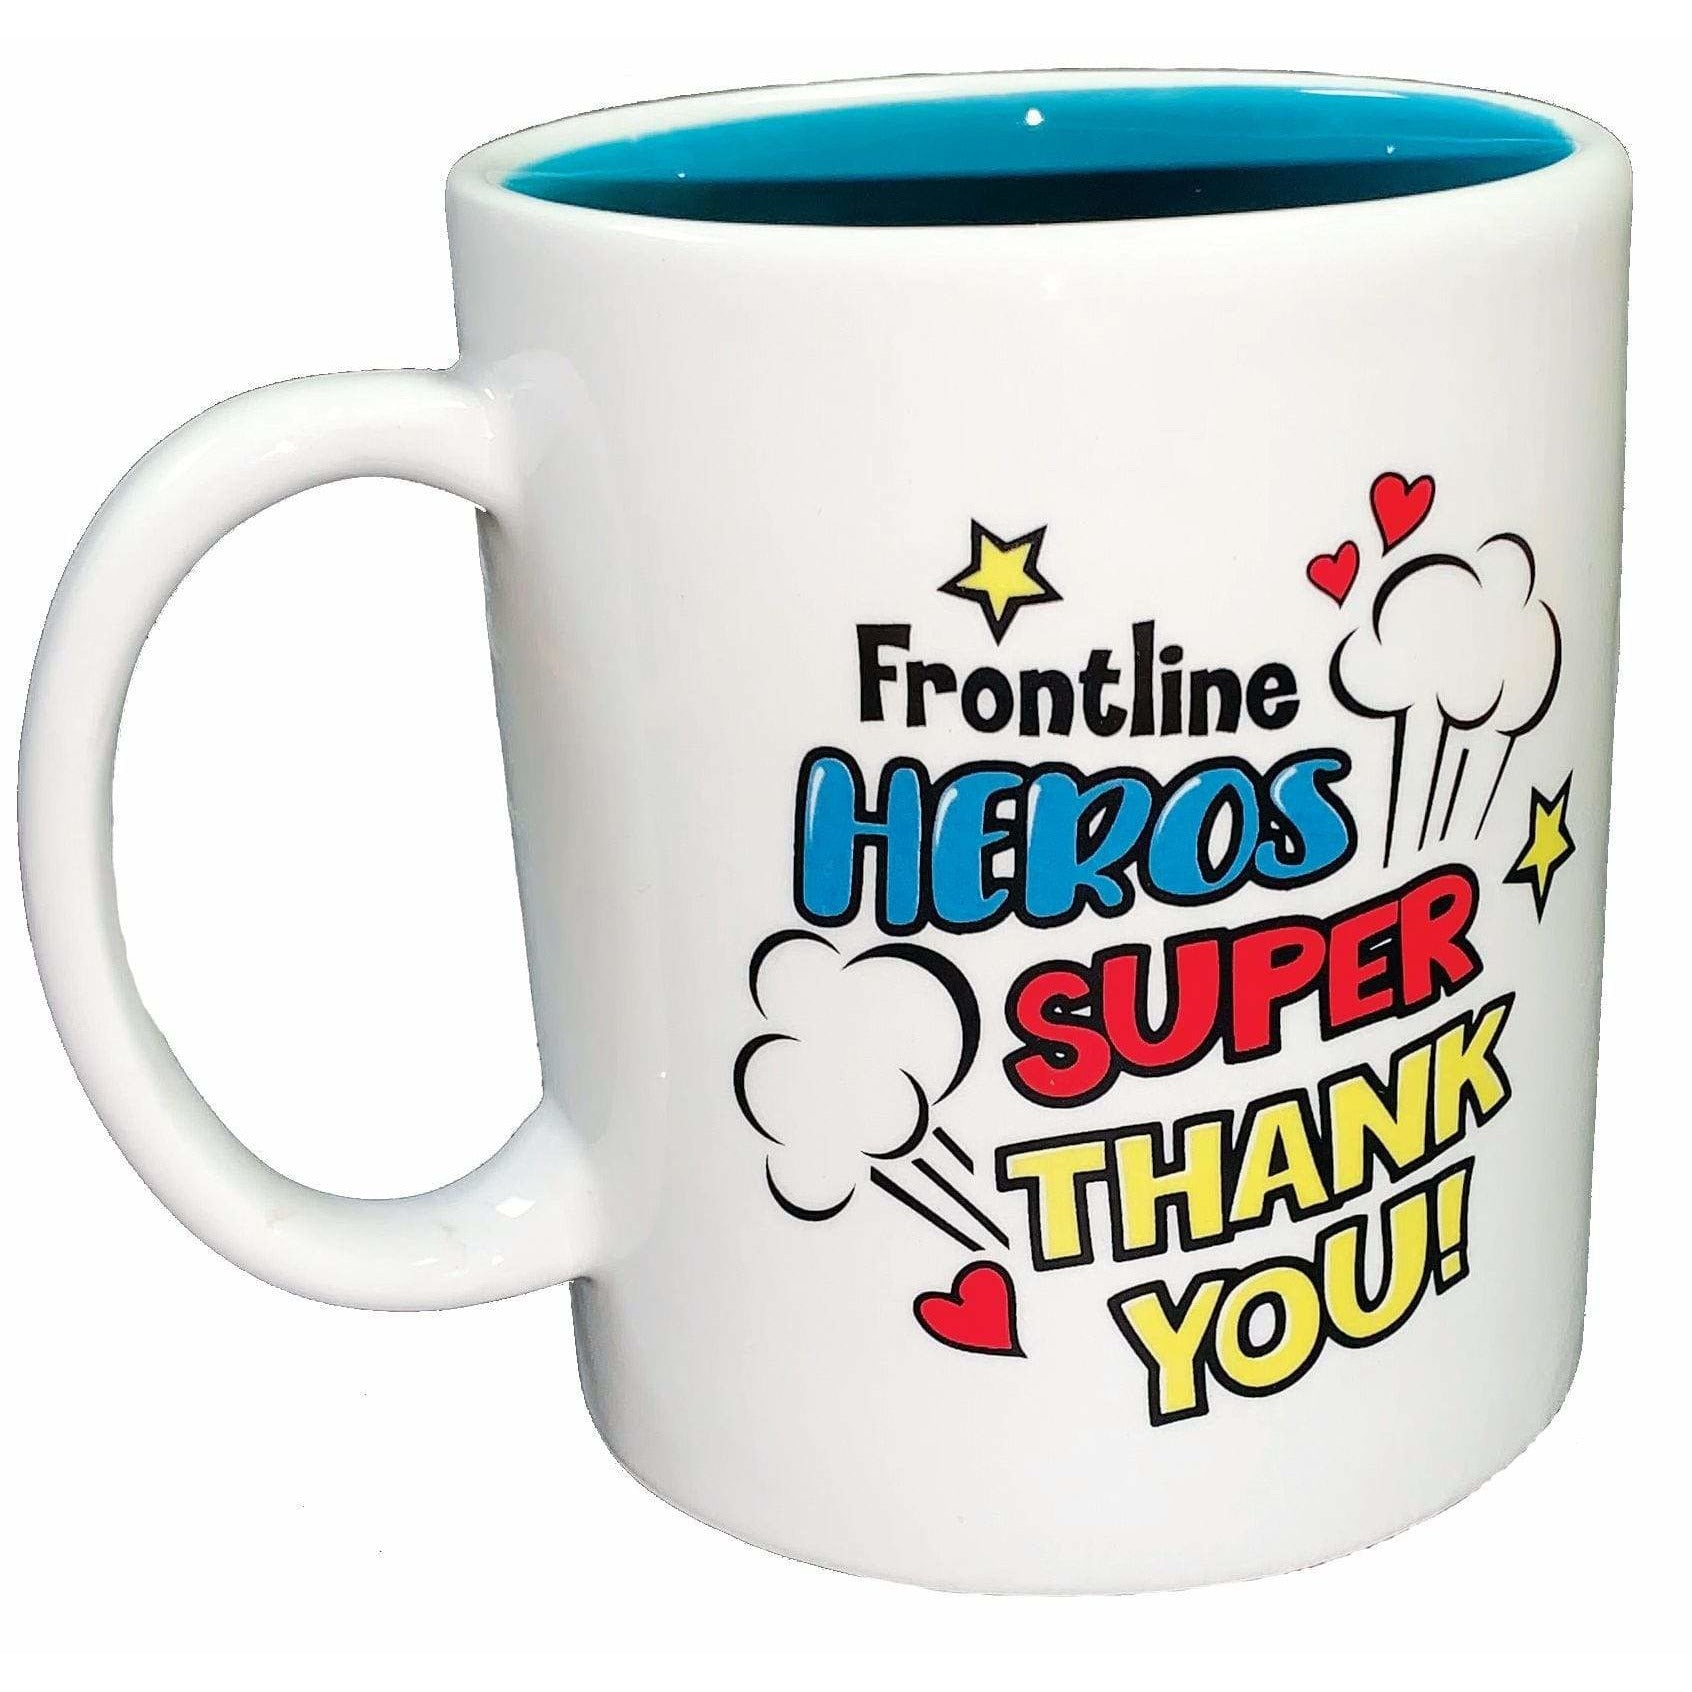 Streamline Mugs Sign of the Times 18oz Mug - FRONTLINE HEROES